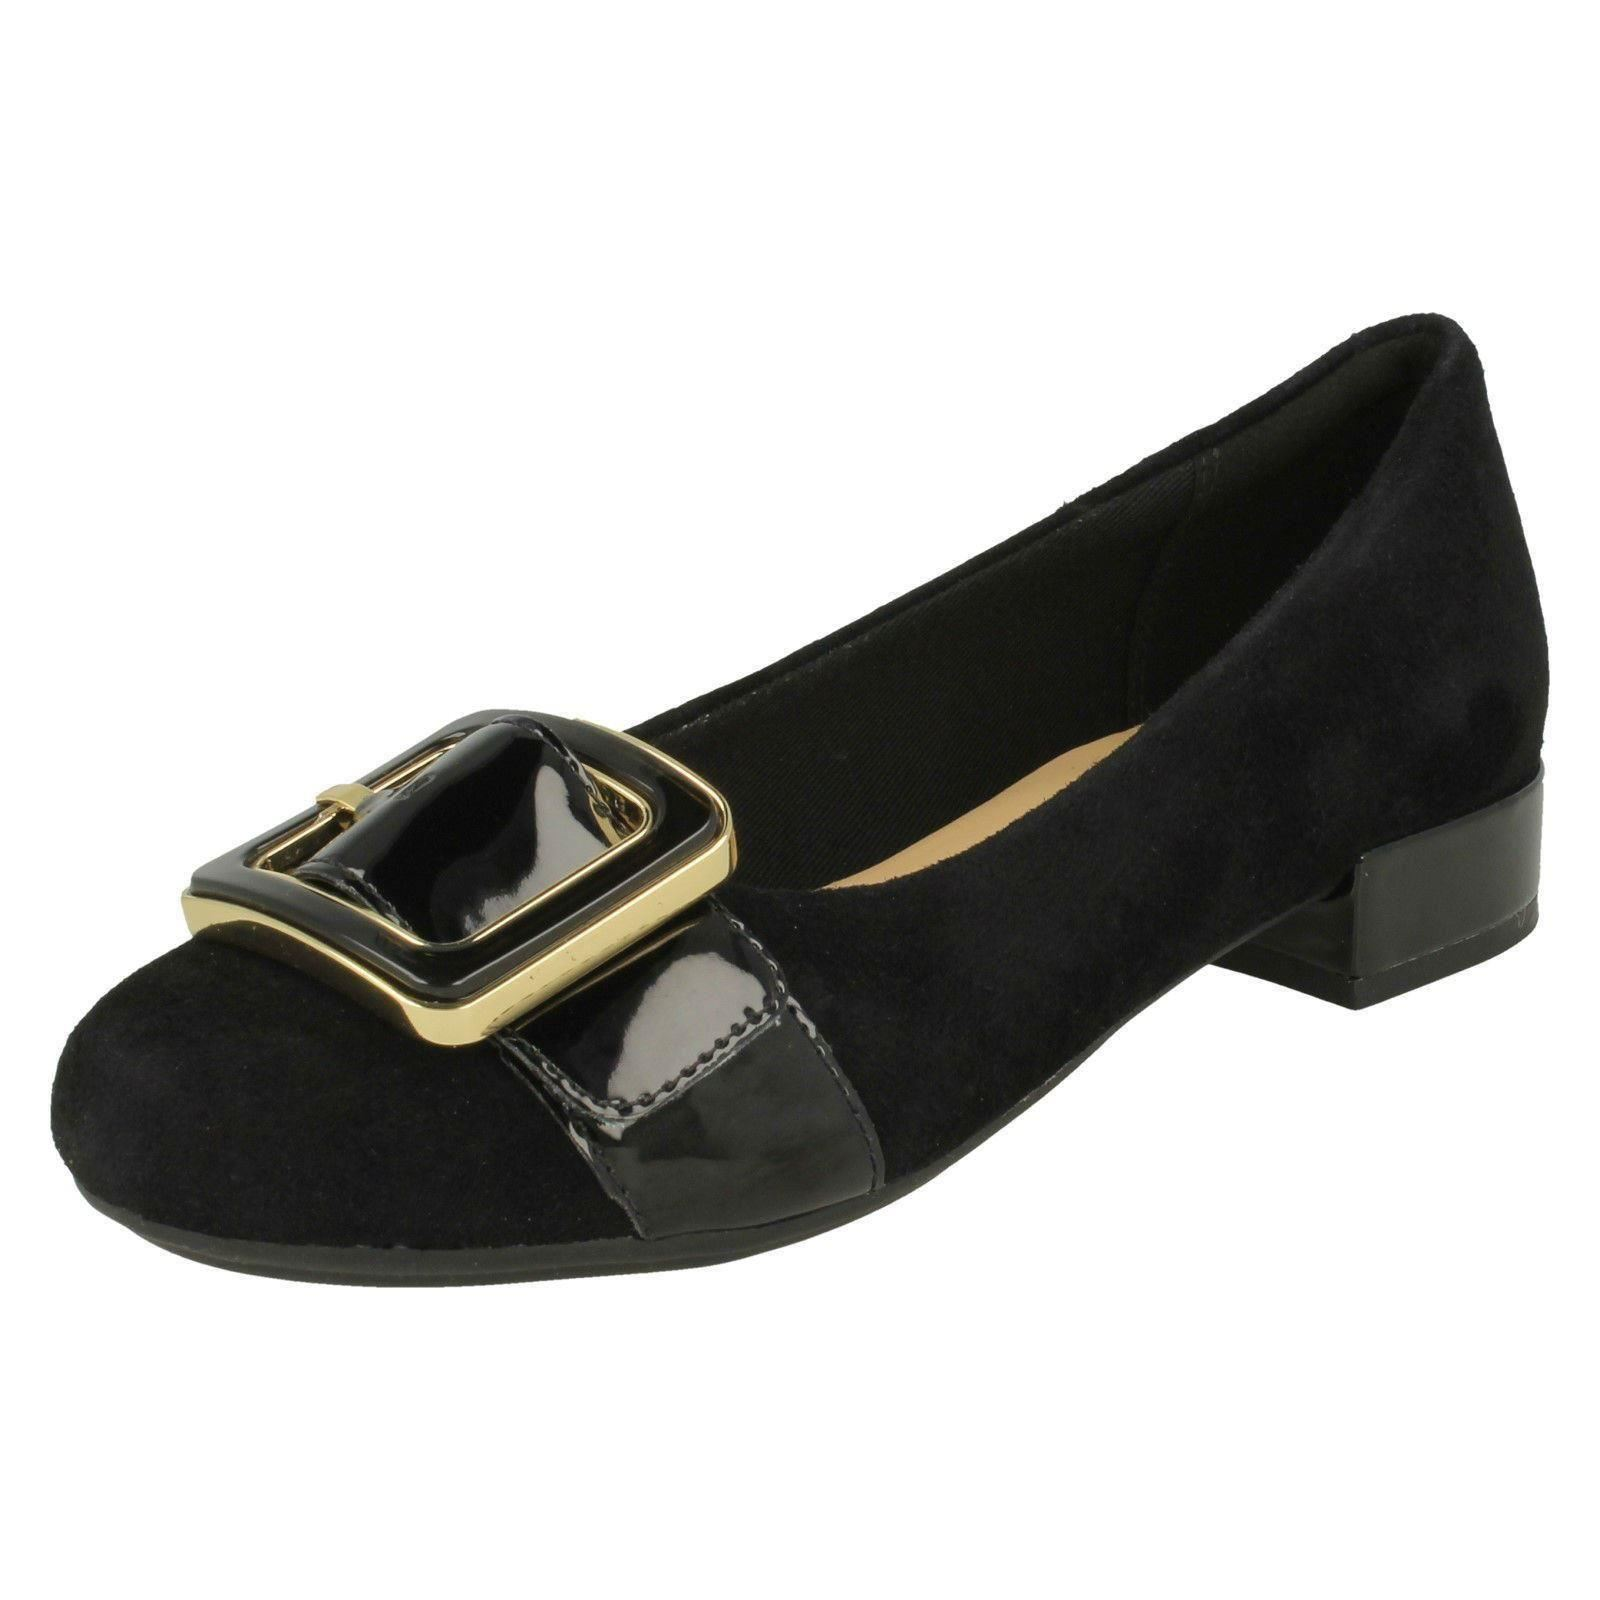 Ladies Stylish Clarks Stylish Ladies Low Heeled Shoes 'Rosabella Faye' dcf3ed